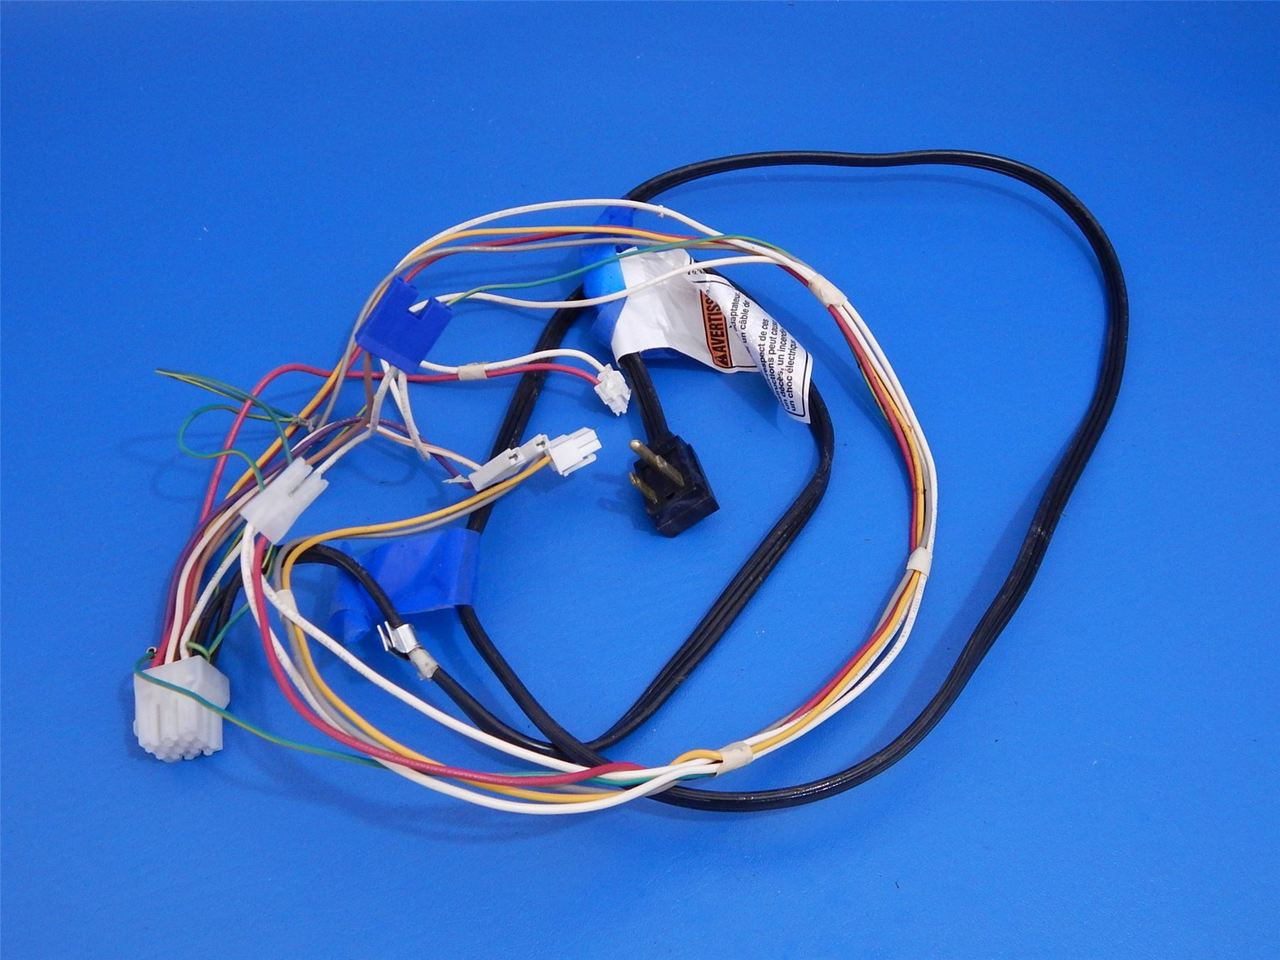 hight resolution of whirlpool side side refrigerator wrs325fdam02 wall plug wire harness w10417928 ice cold beer appliance parts